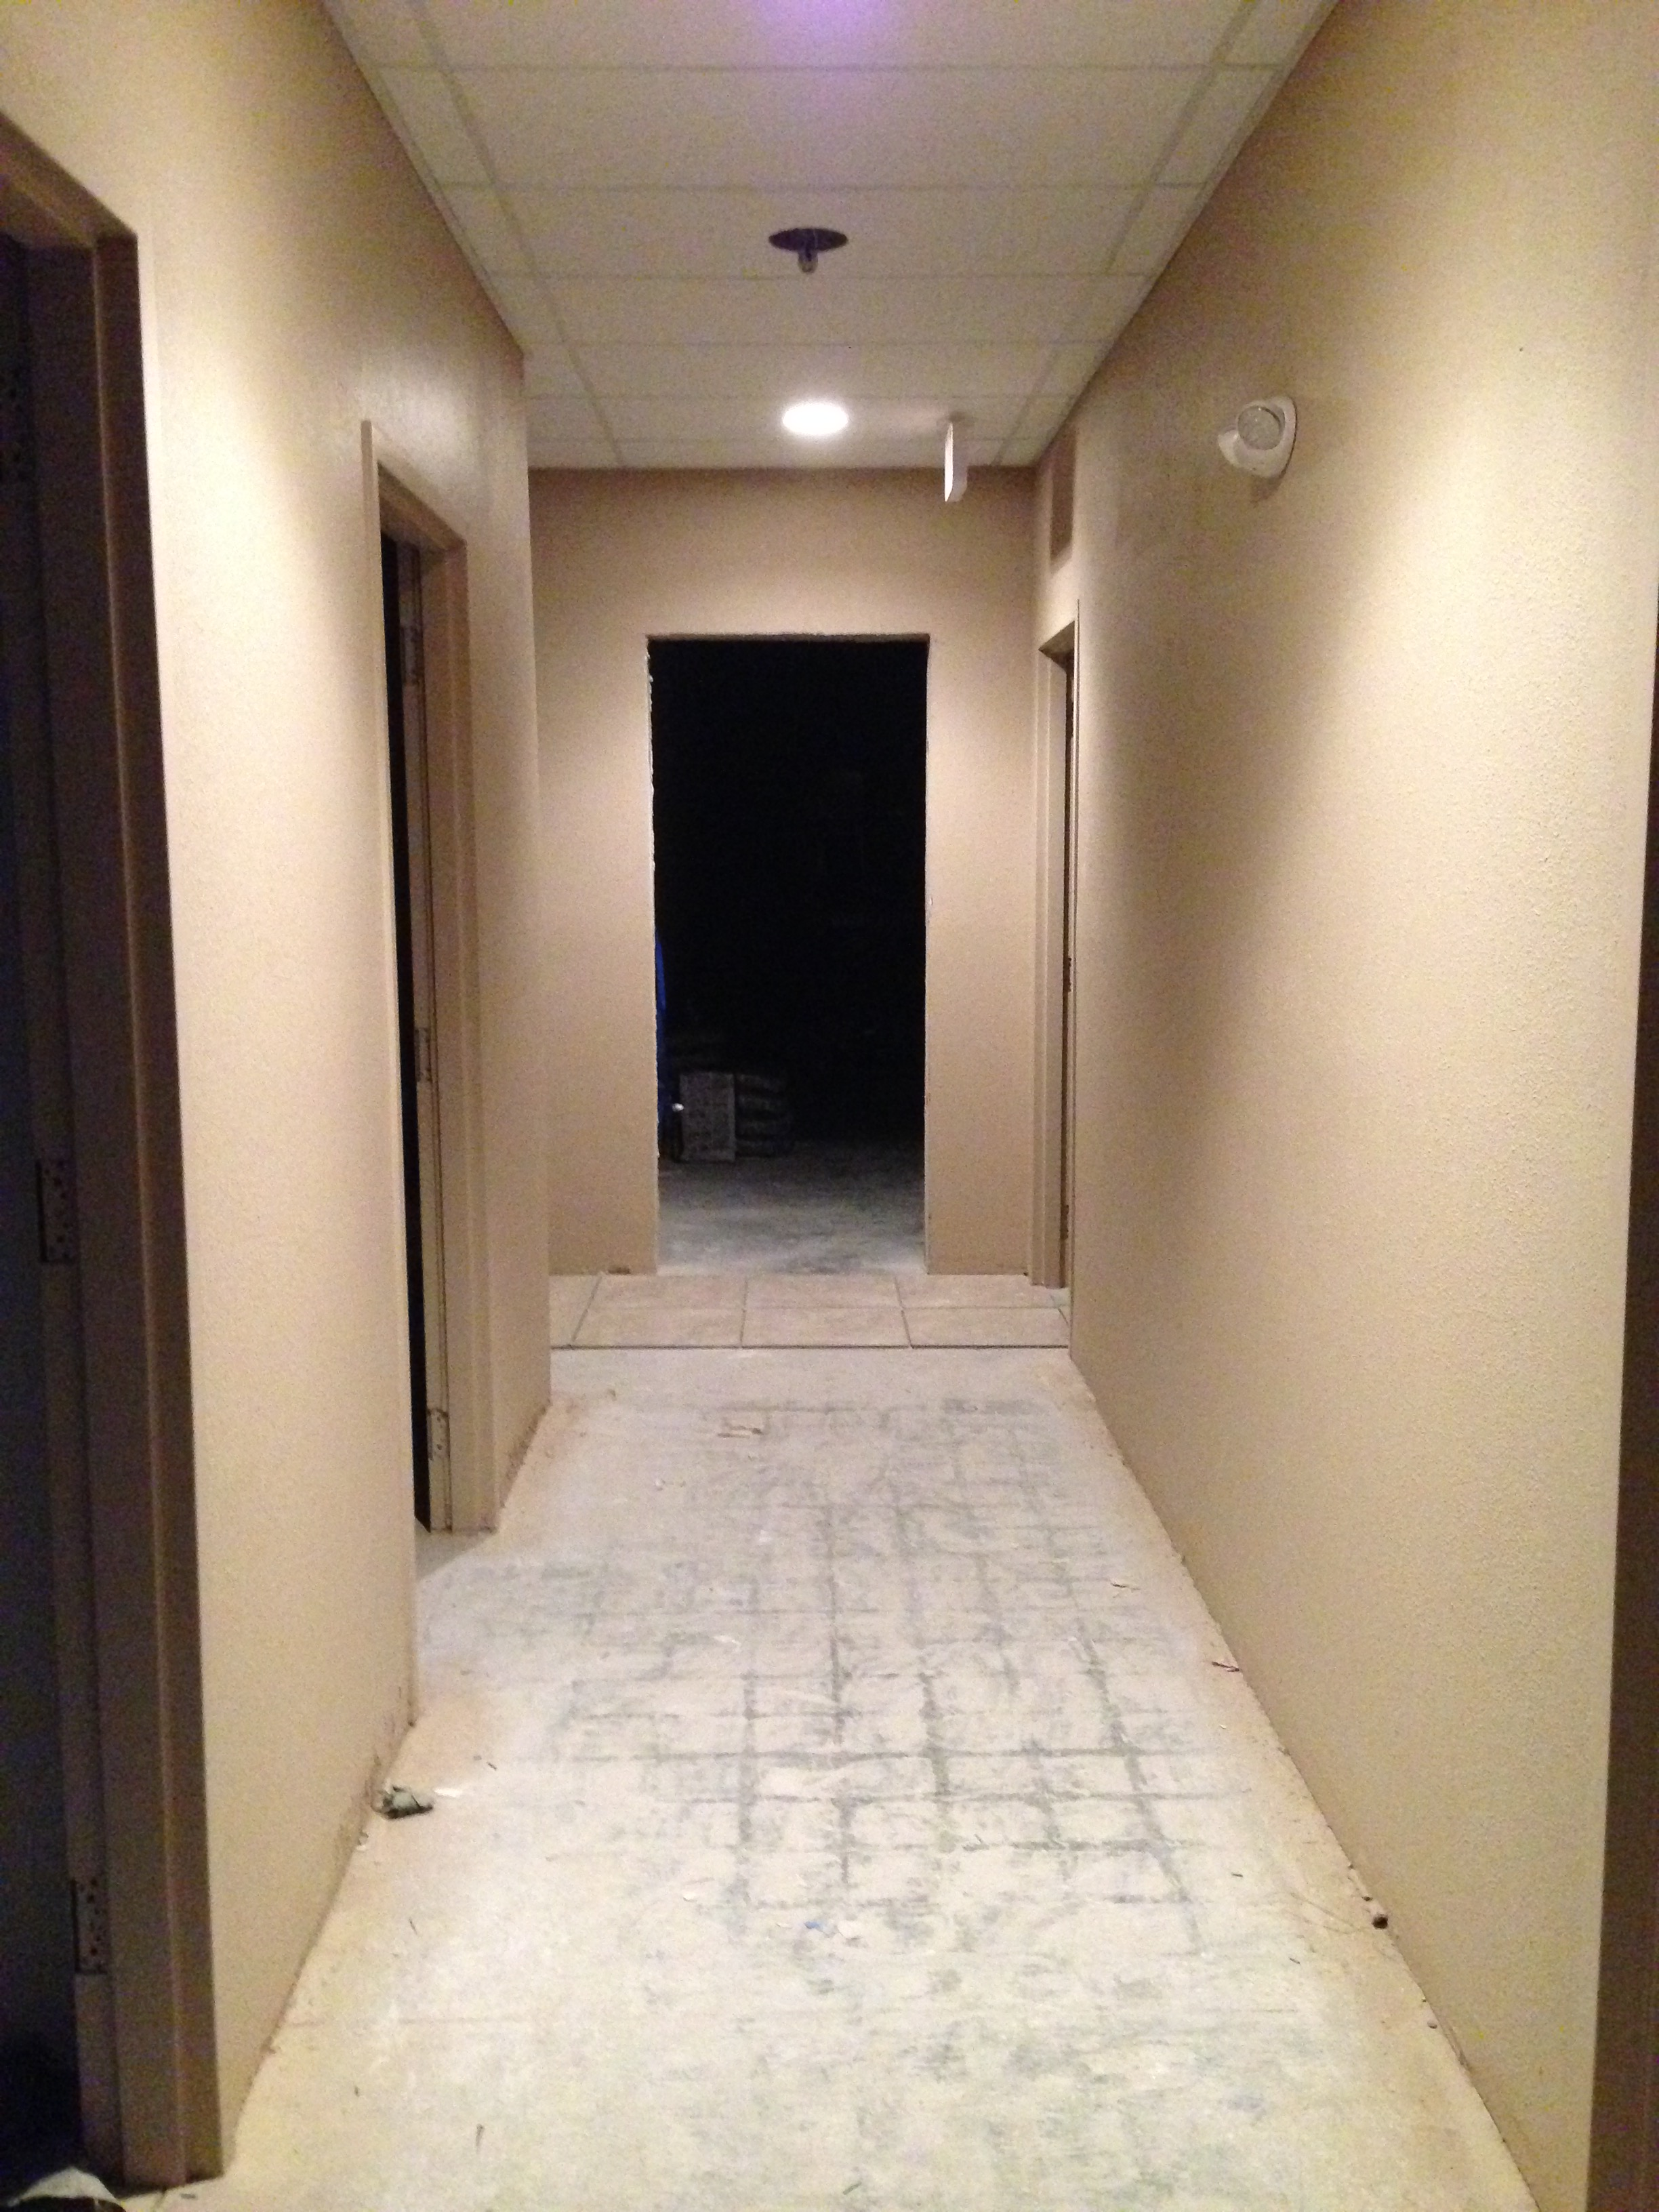 Hallway from office area towards restrooms and warehouse